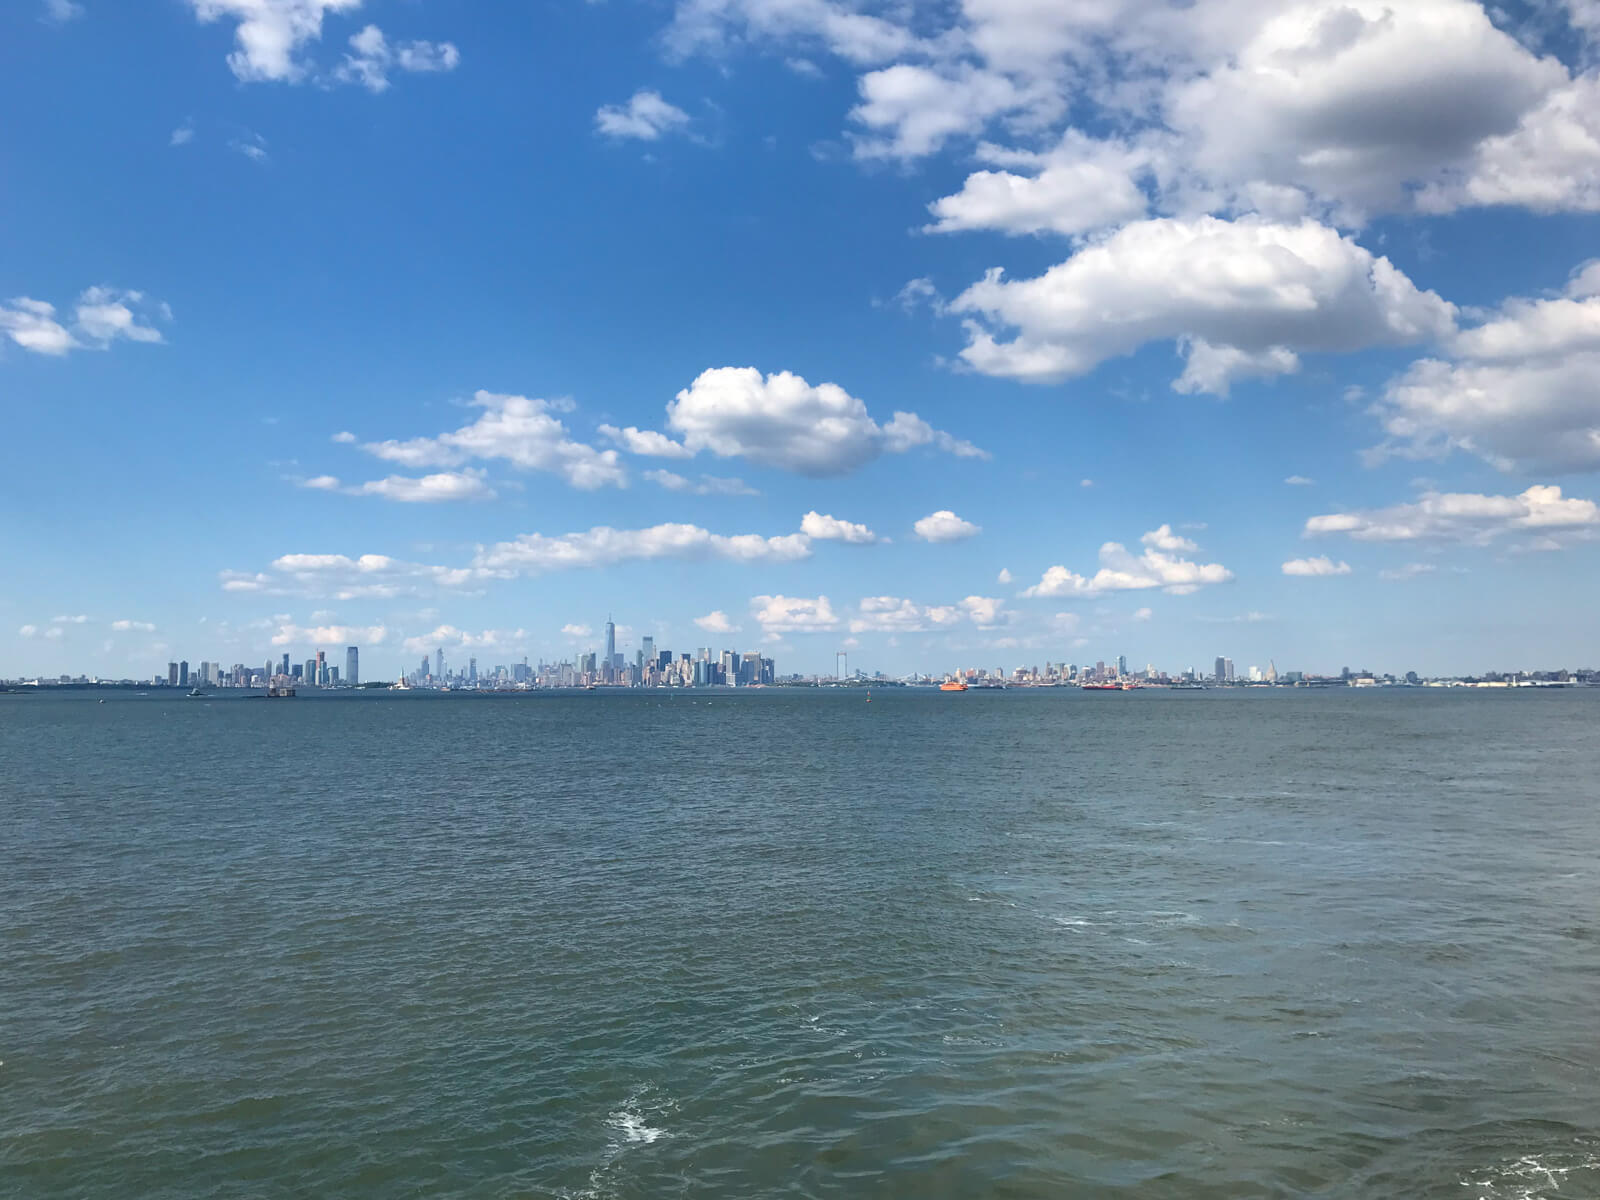 A city skyline with the ocean taking up the bottom half of the frame and blue sky with many clouds taking up the top half of the frame